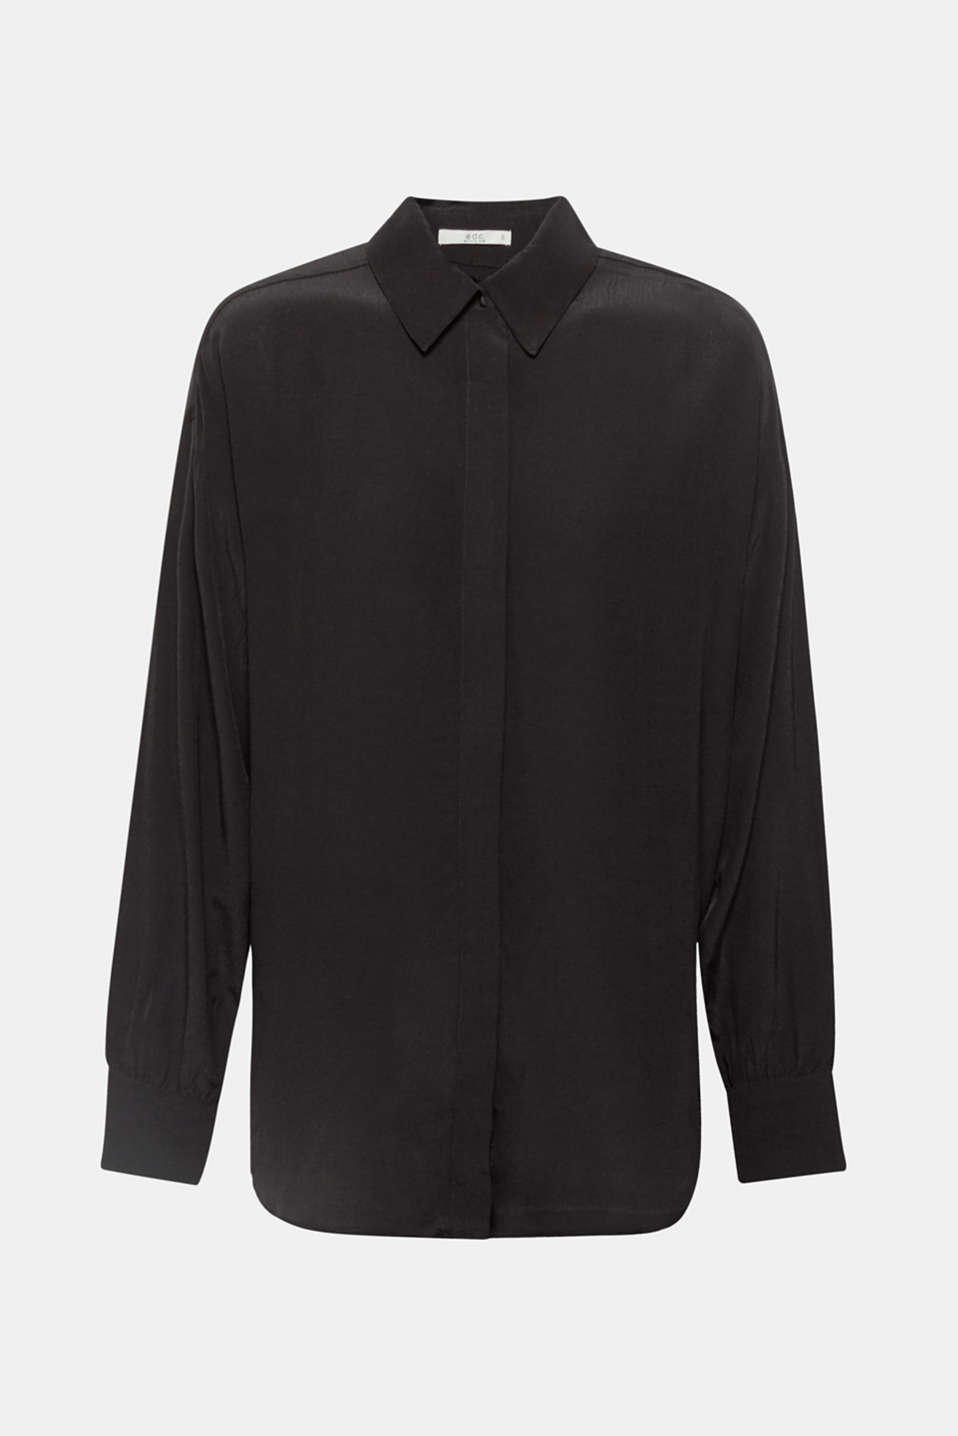 Simply casual and goes with almost everything: floaty blouse with a concealed button placket and high-low hem.